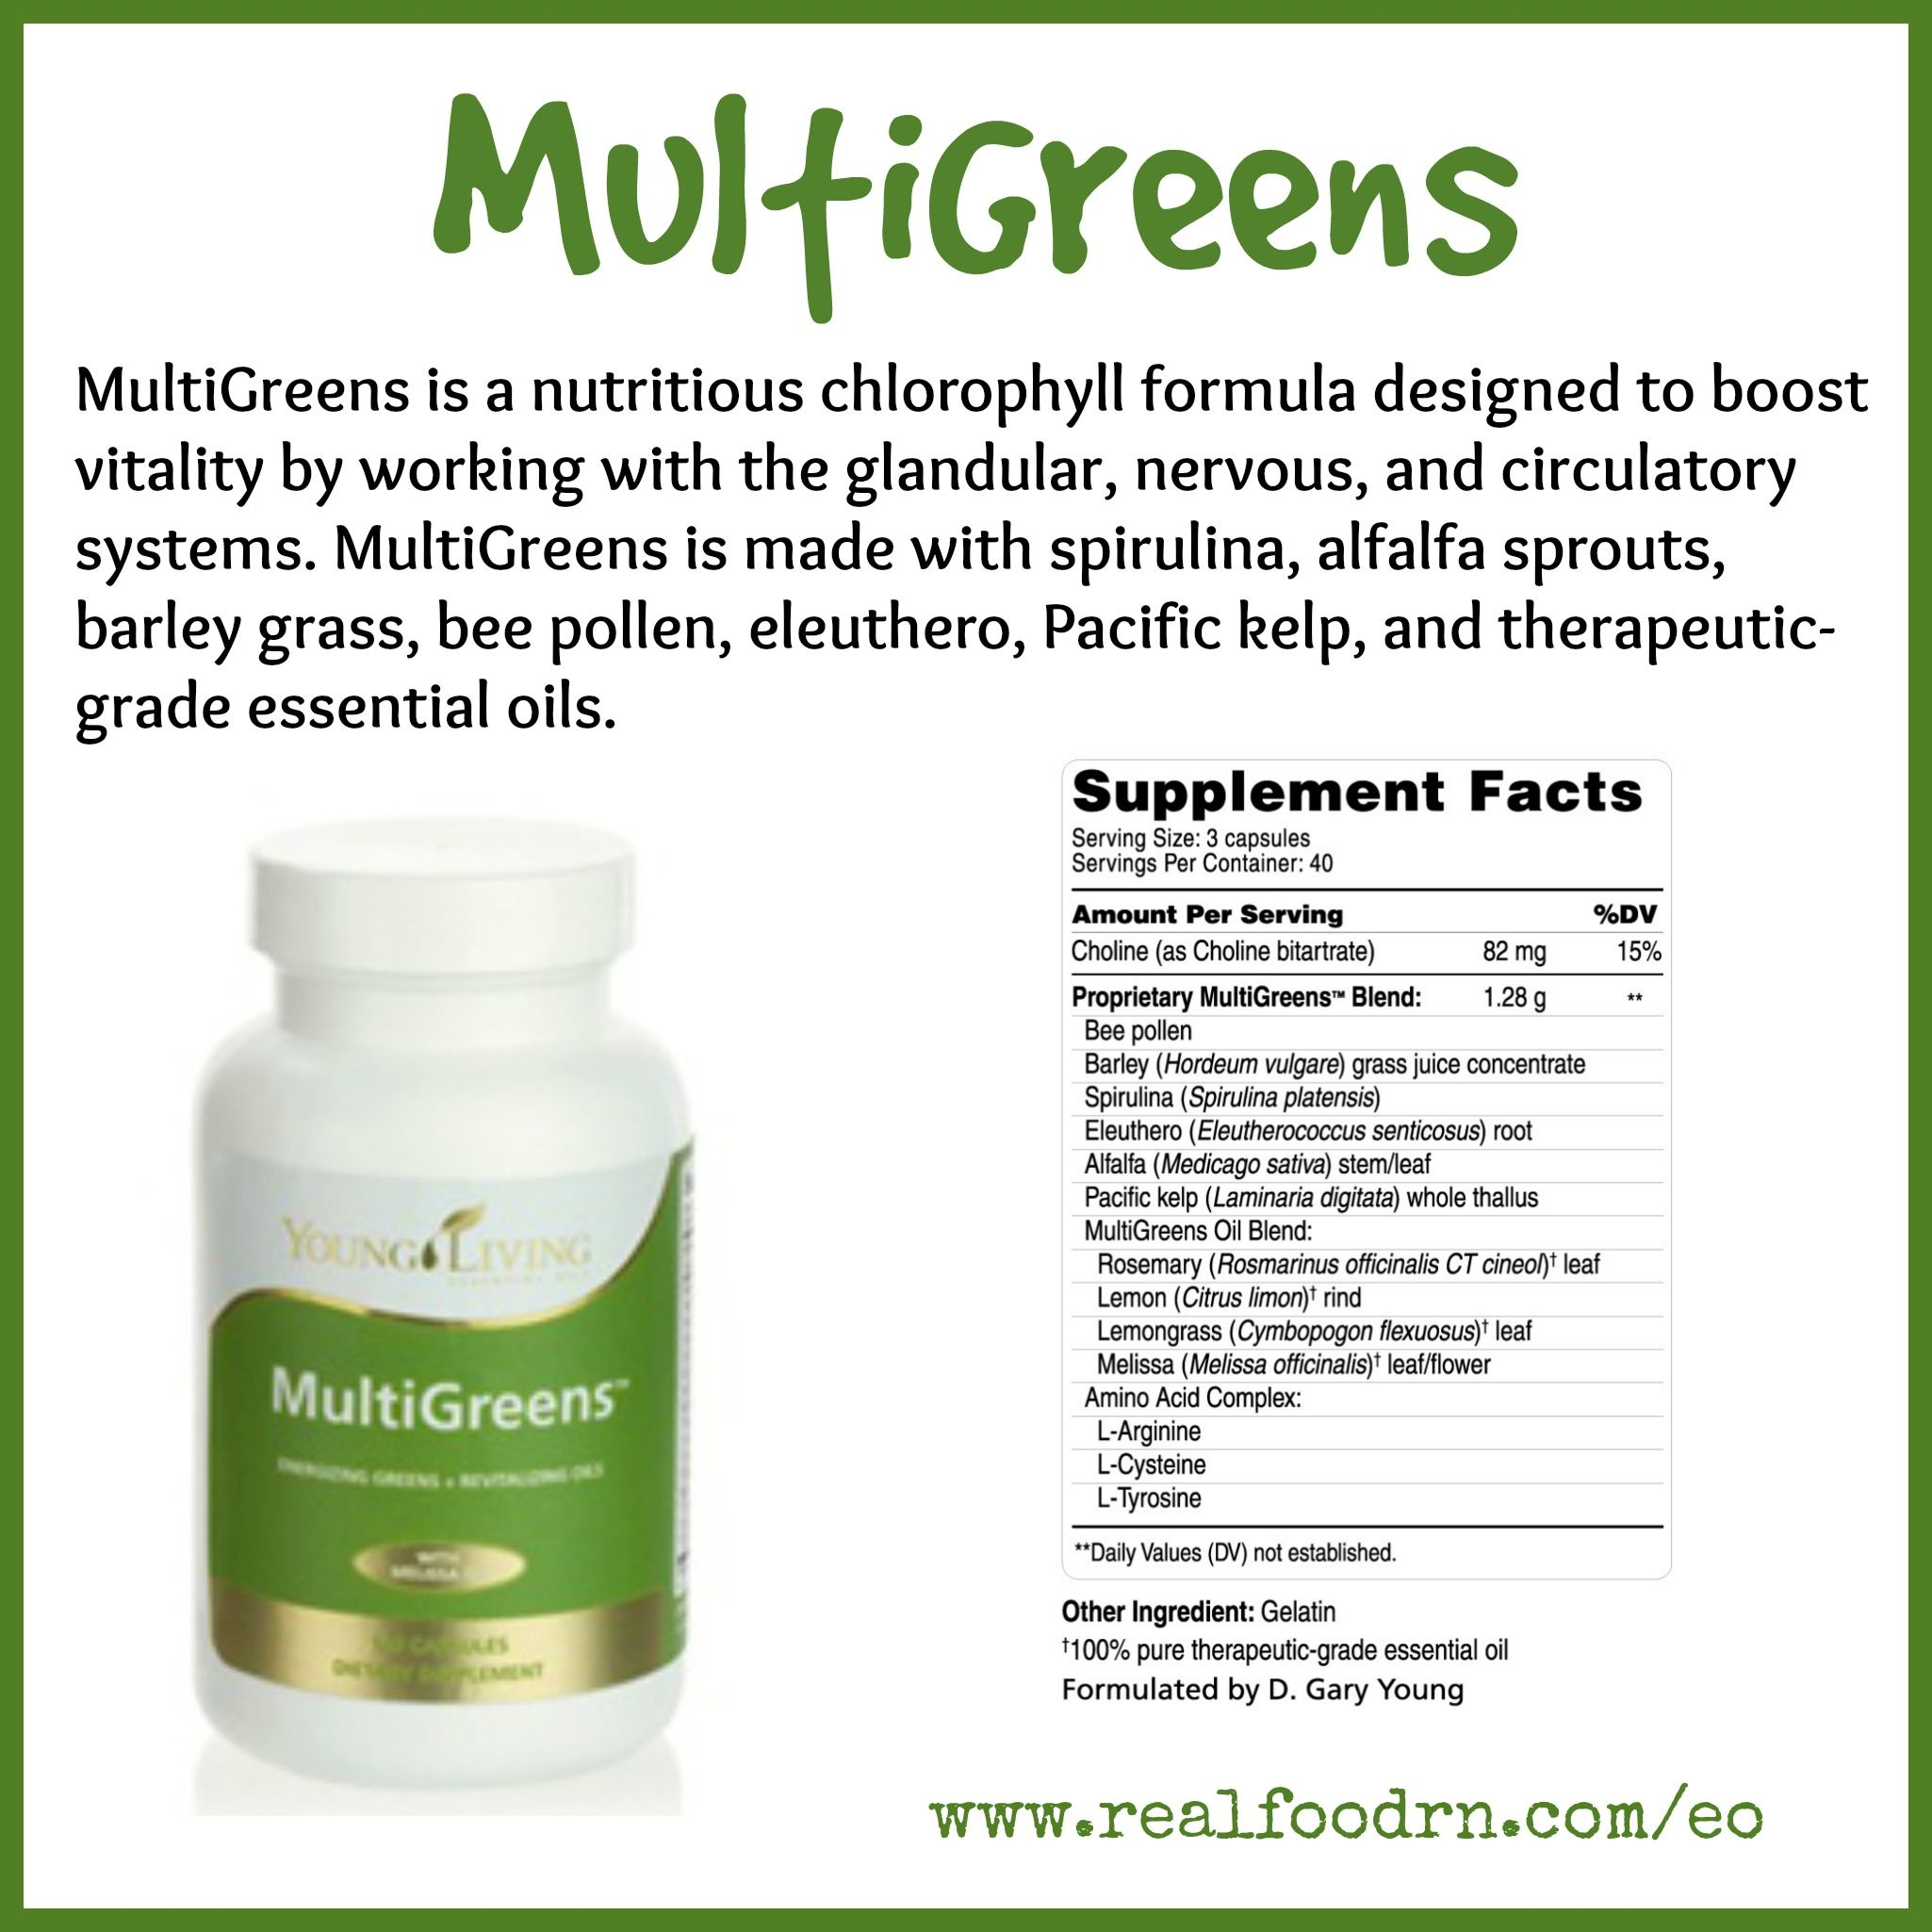 MultiGreens is a nutritious chlorophyll formula designed to boost vitality by working with the glandular, nervous, and circulatory systems. #MultiGreens is made with spirulina, alfalfa sprouts, barley grass, bee pollen, eleuthero, Pacific kelp, and therapeutic-grade essential oils.